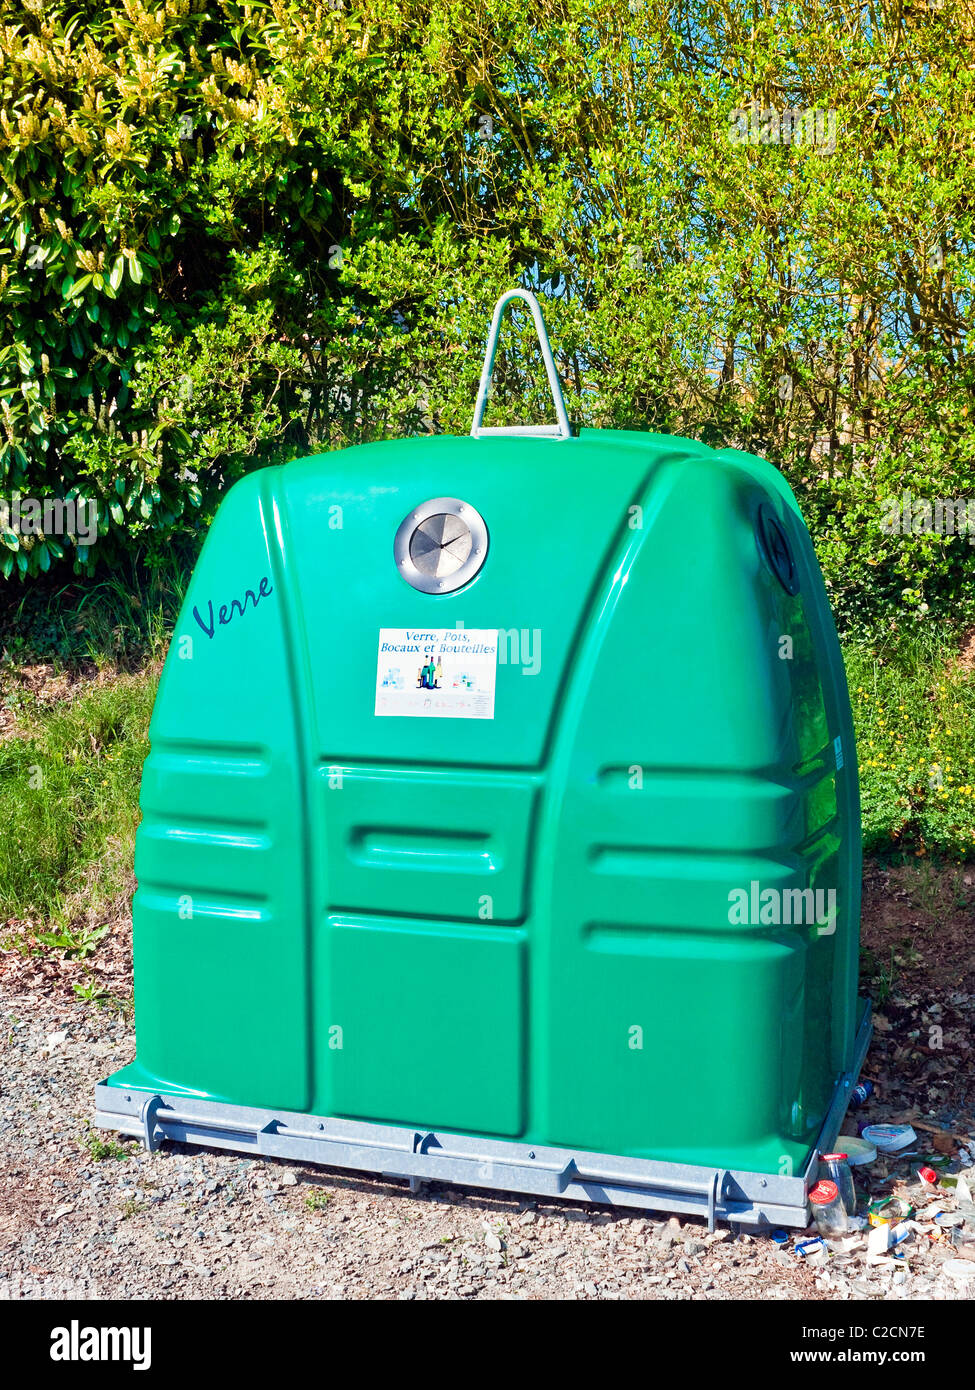 New Bottle Bank container - France. - Stock Image